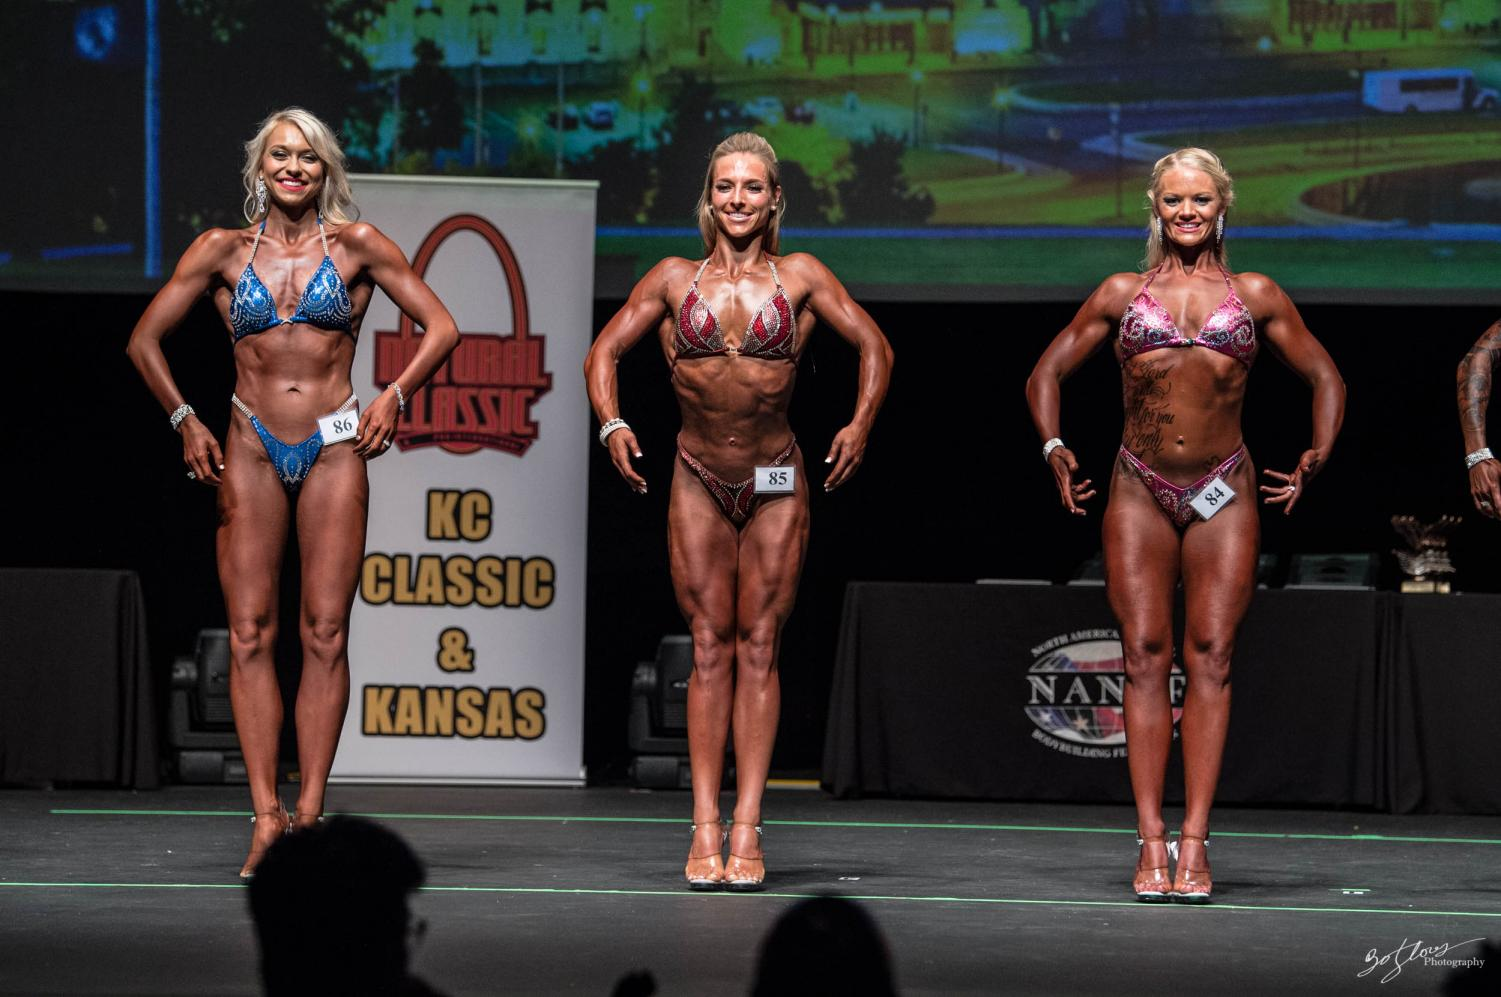 Swickard (middle) stands on stage displaying her figure to the judges and crowd.